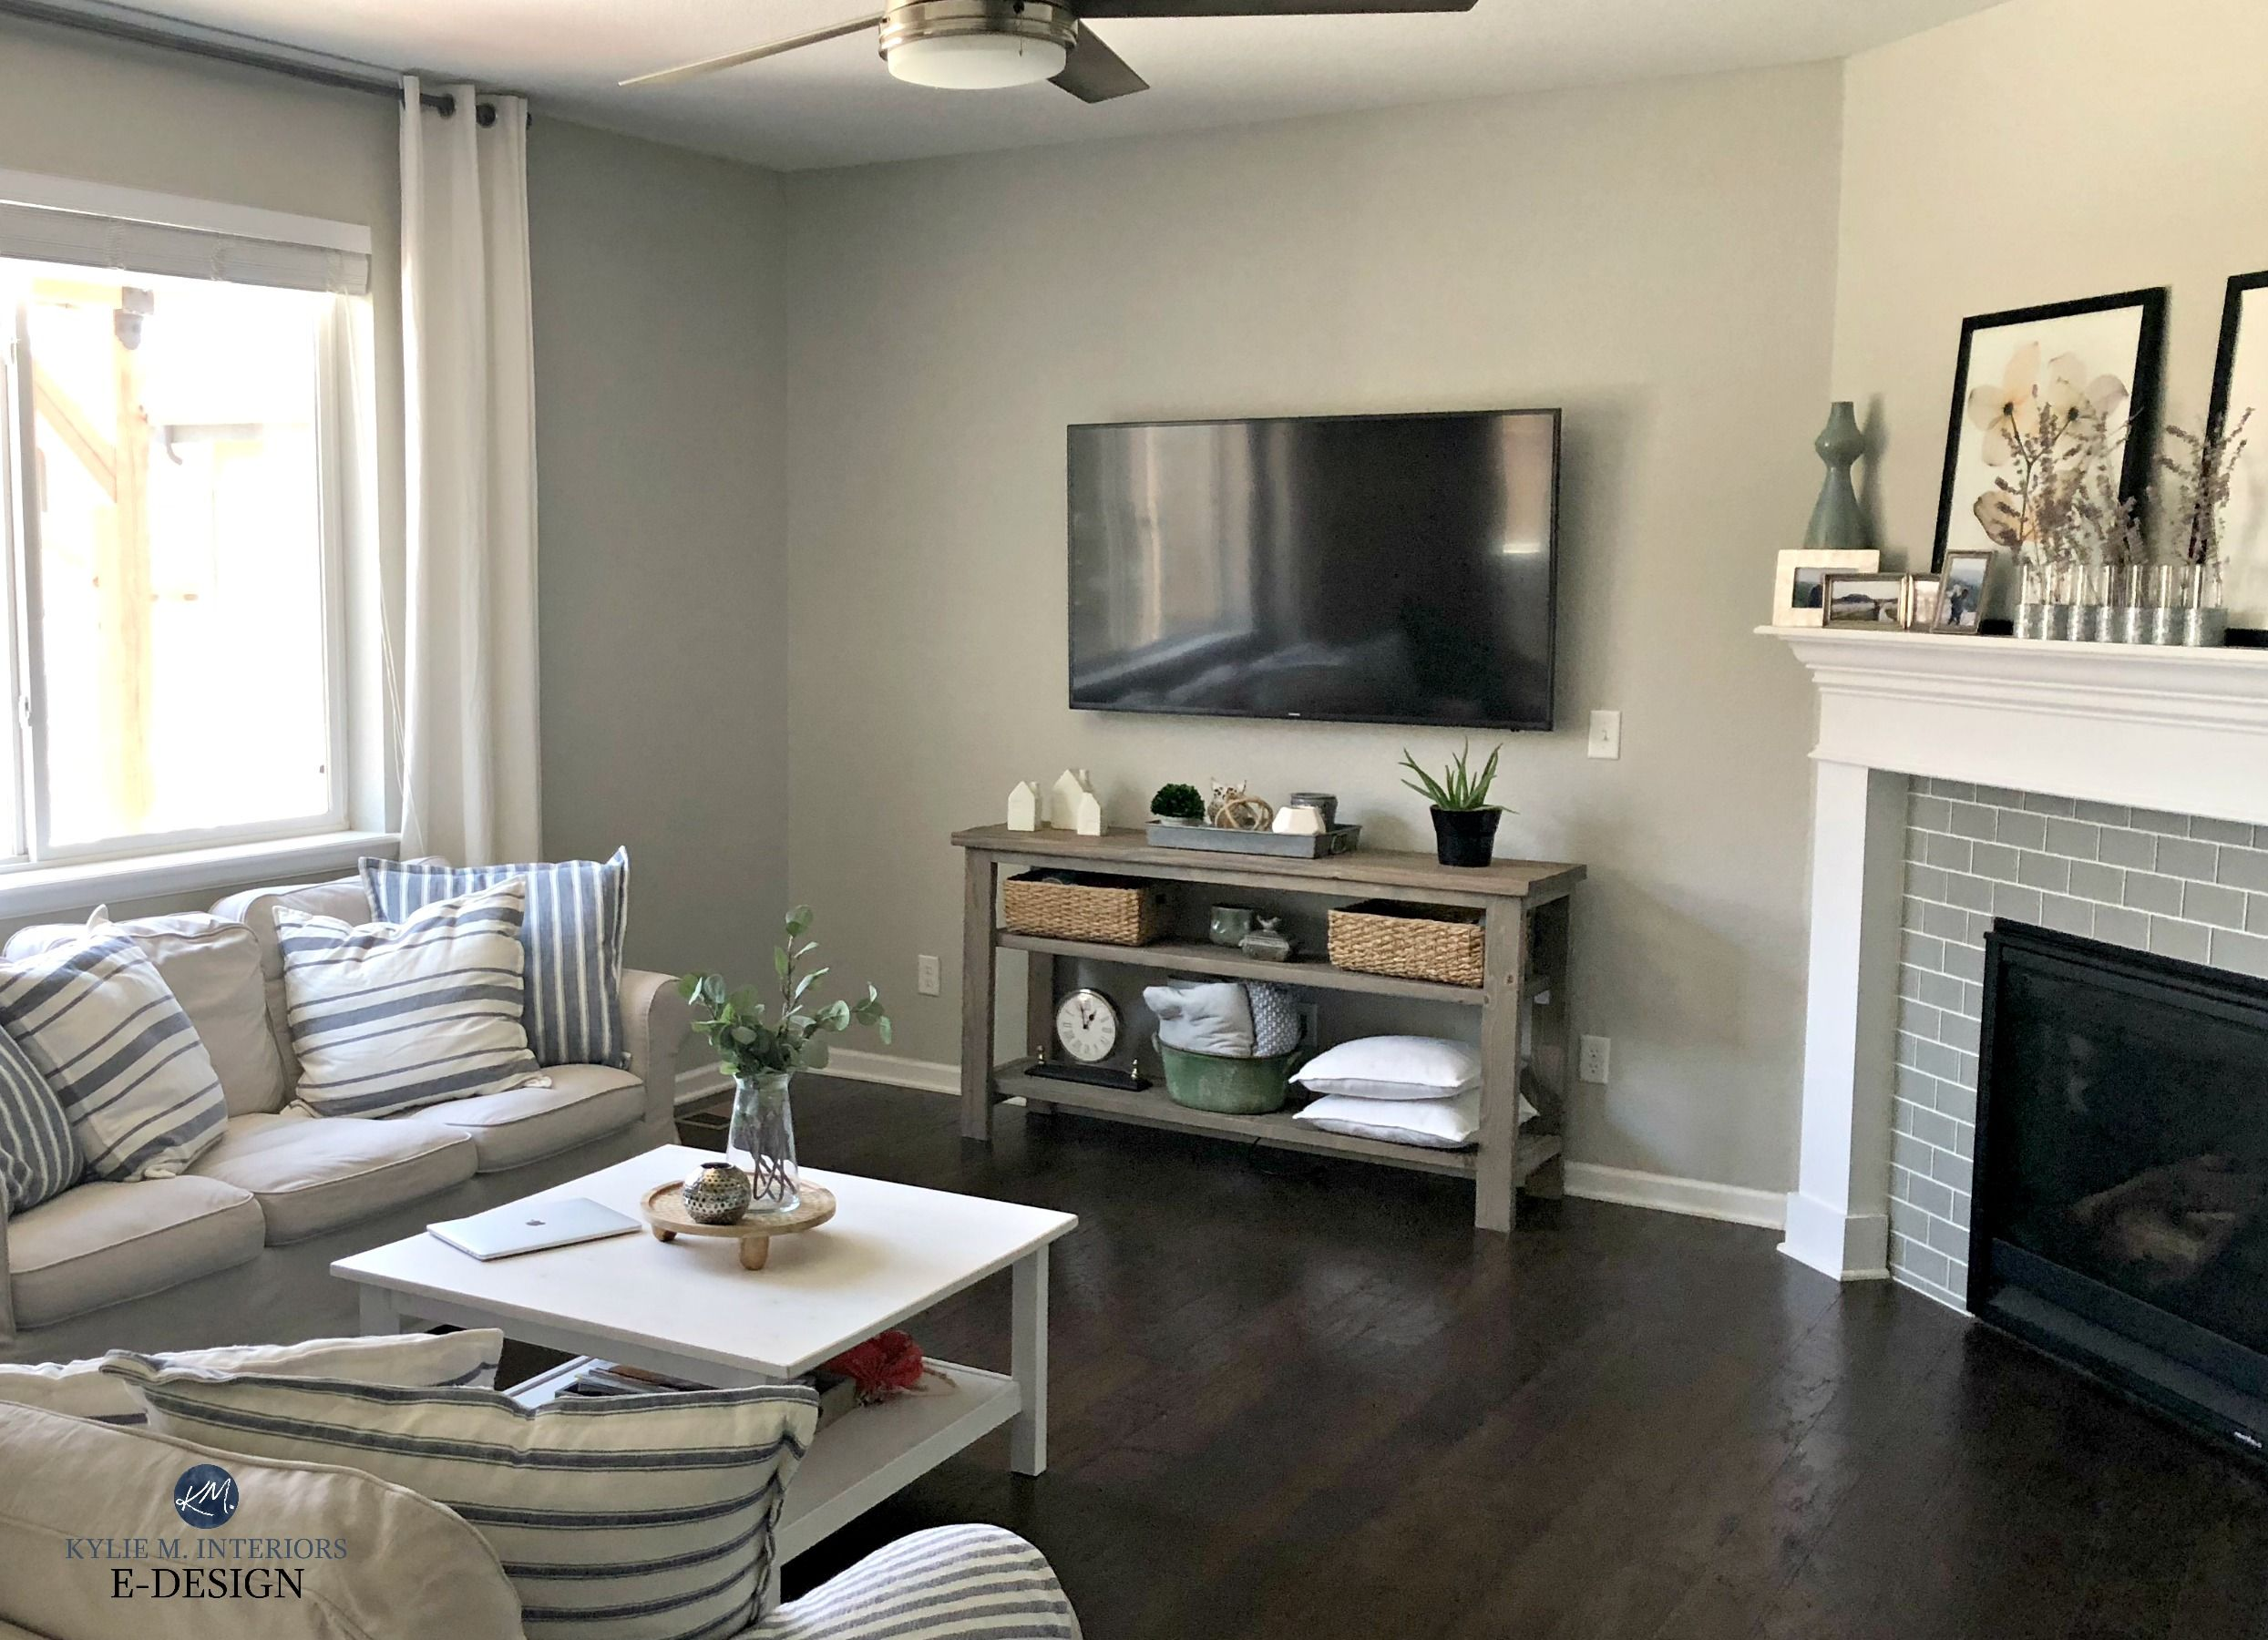 Sherwin Williams Repose Gray in family or living room